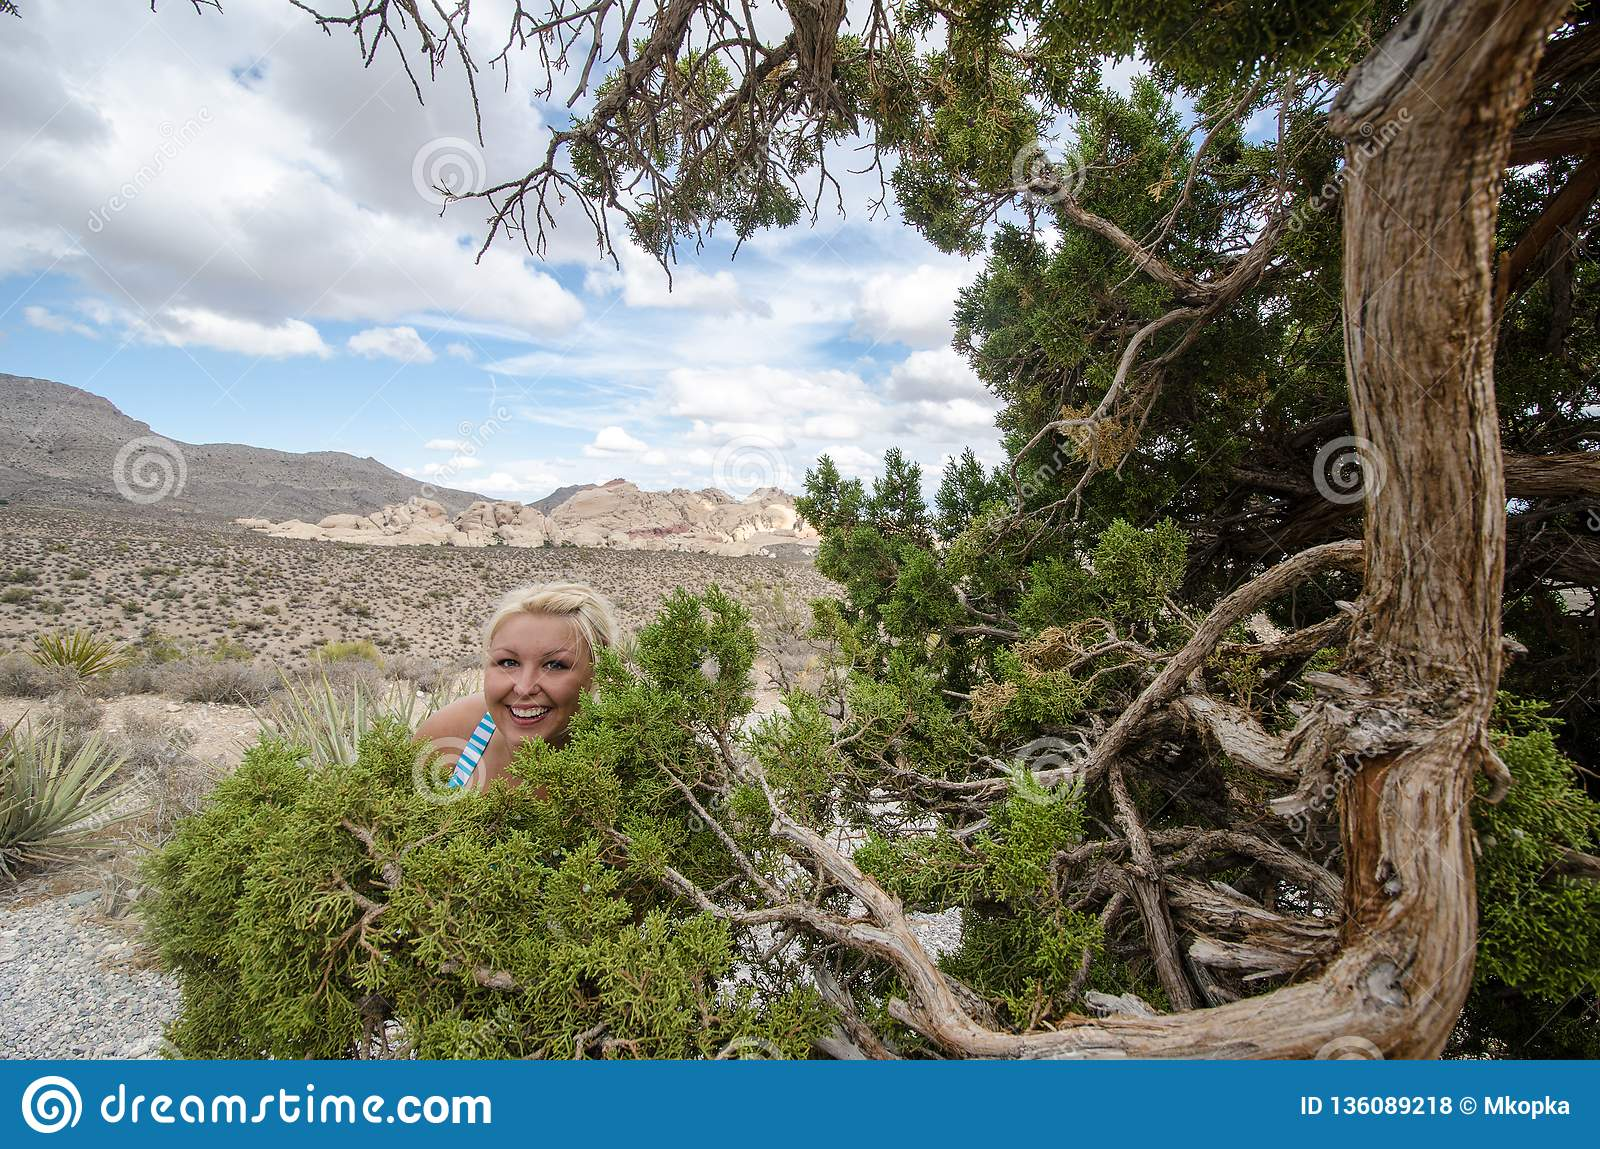 Funny, goofy blonde woman hides in the bushes near a juniper tree in Red Rock Canyon Conservation area in Nevada